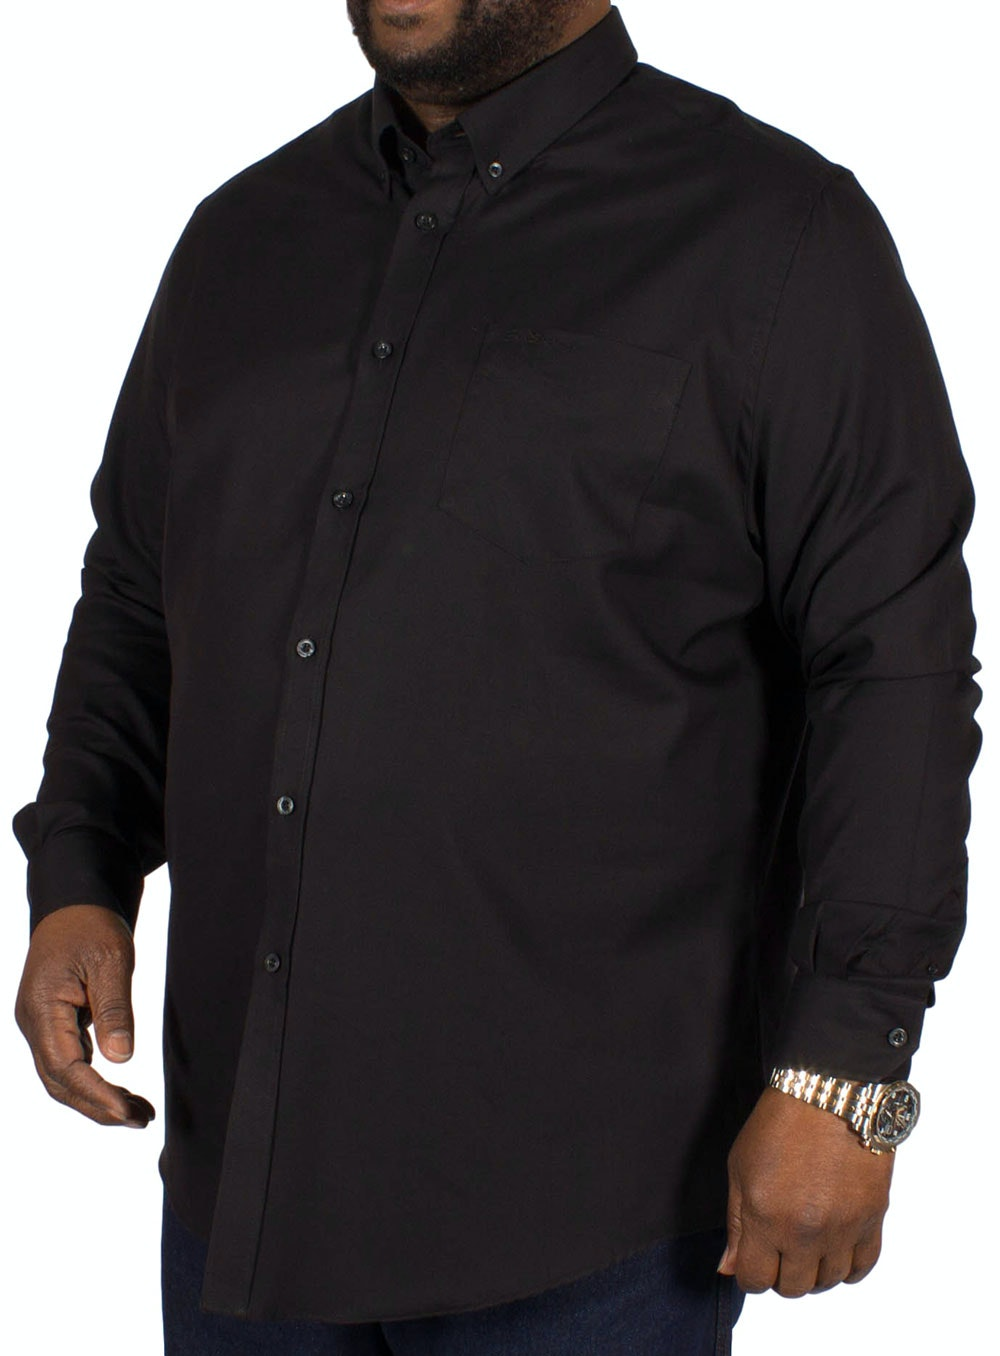 Ben Sherman Classic Oxford Shirt Black